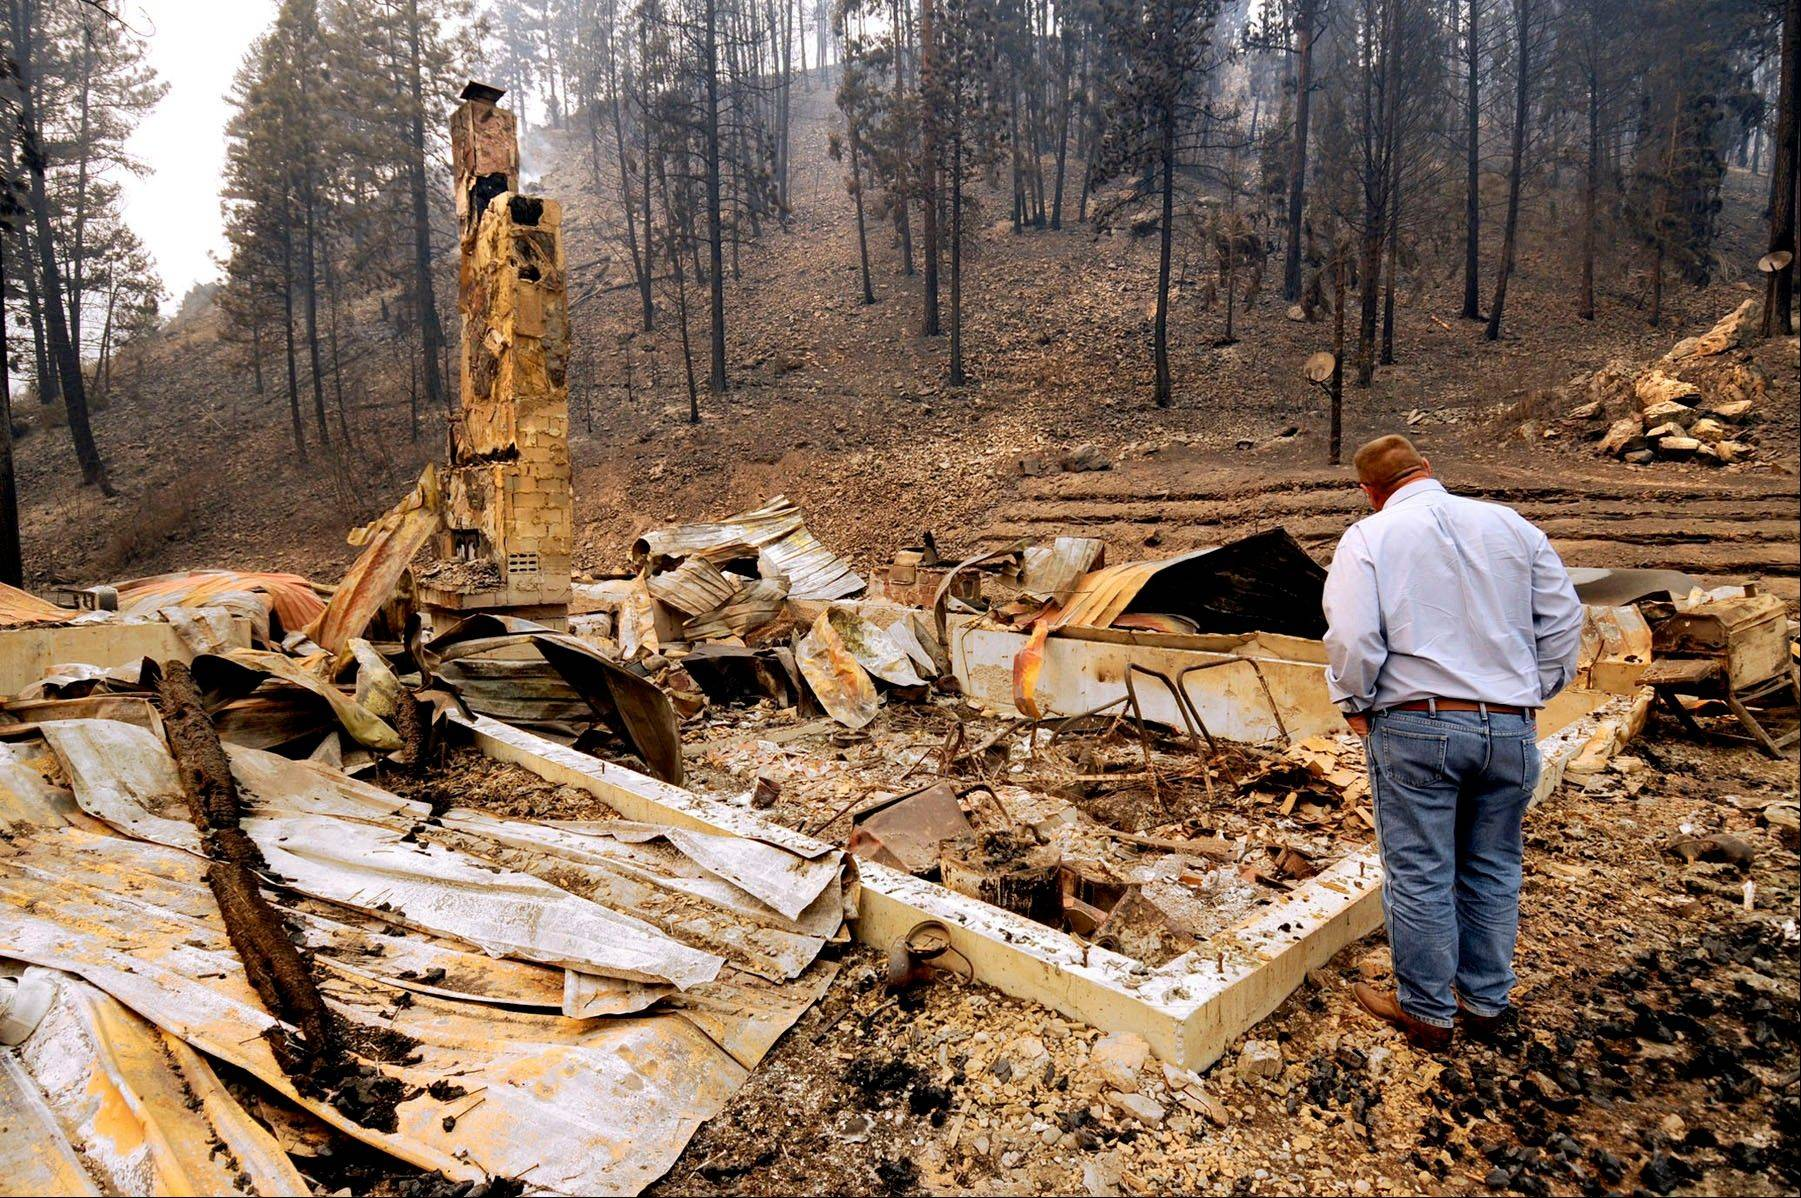 U.S. Sen. Jon Tester, D-Mont., looks at the remains of a Lolo Creek home that was destroyed by the West Fork II fire when it swept down the Lolo Creek canyon, Wednesday, Aug. 21, 2013 near Lolo, Mont. The fire burned four other homes as well along the U.S. Highway 12 corridor.